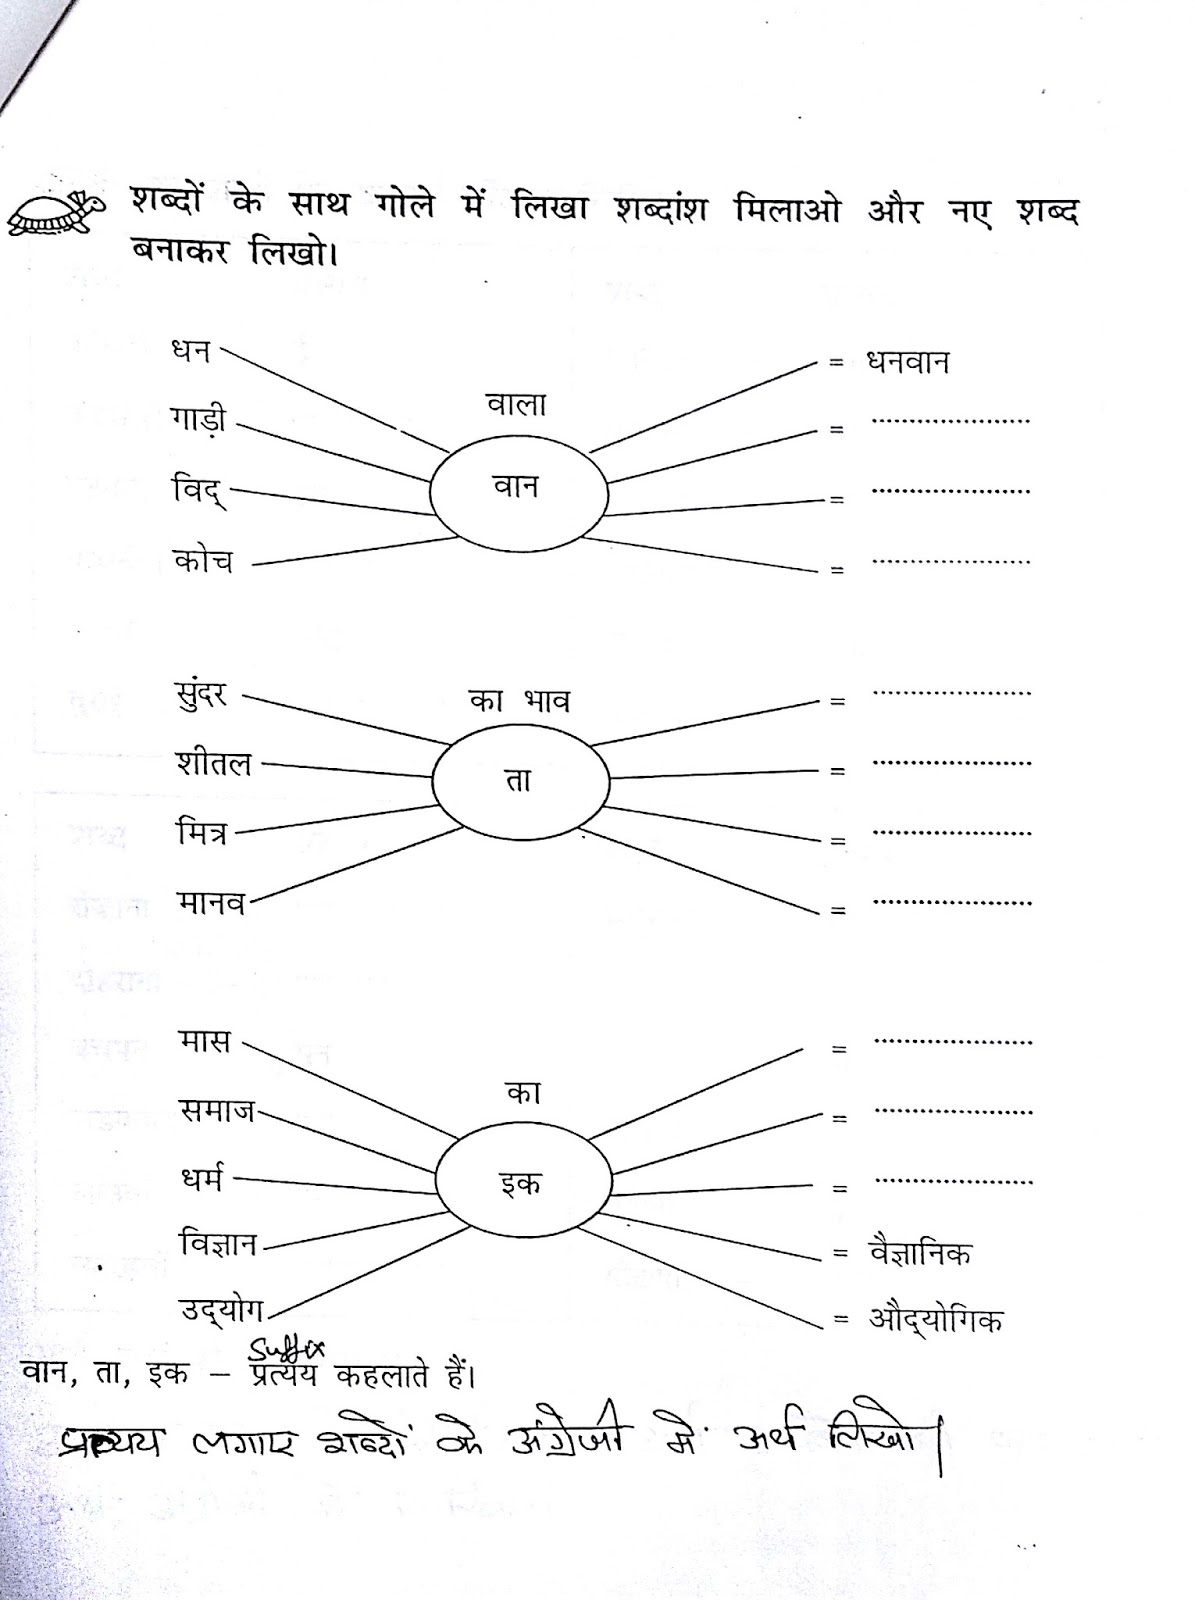 hindi grammar work sheet collection for classes 5 6 7 8 prefix and suffix work sheets for. Black Bedroom Furniture Sets. Home Design Ideas